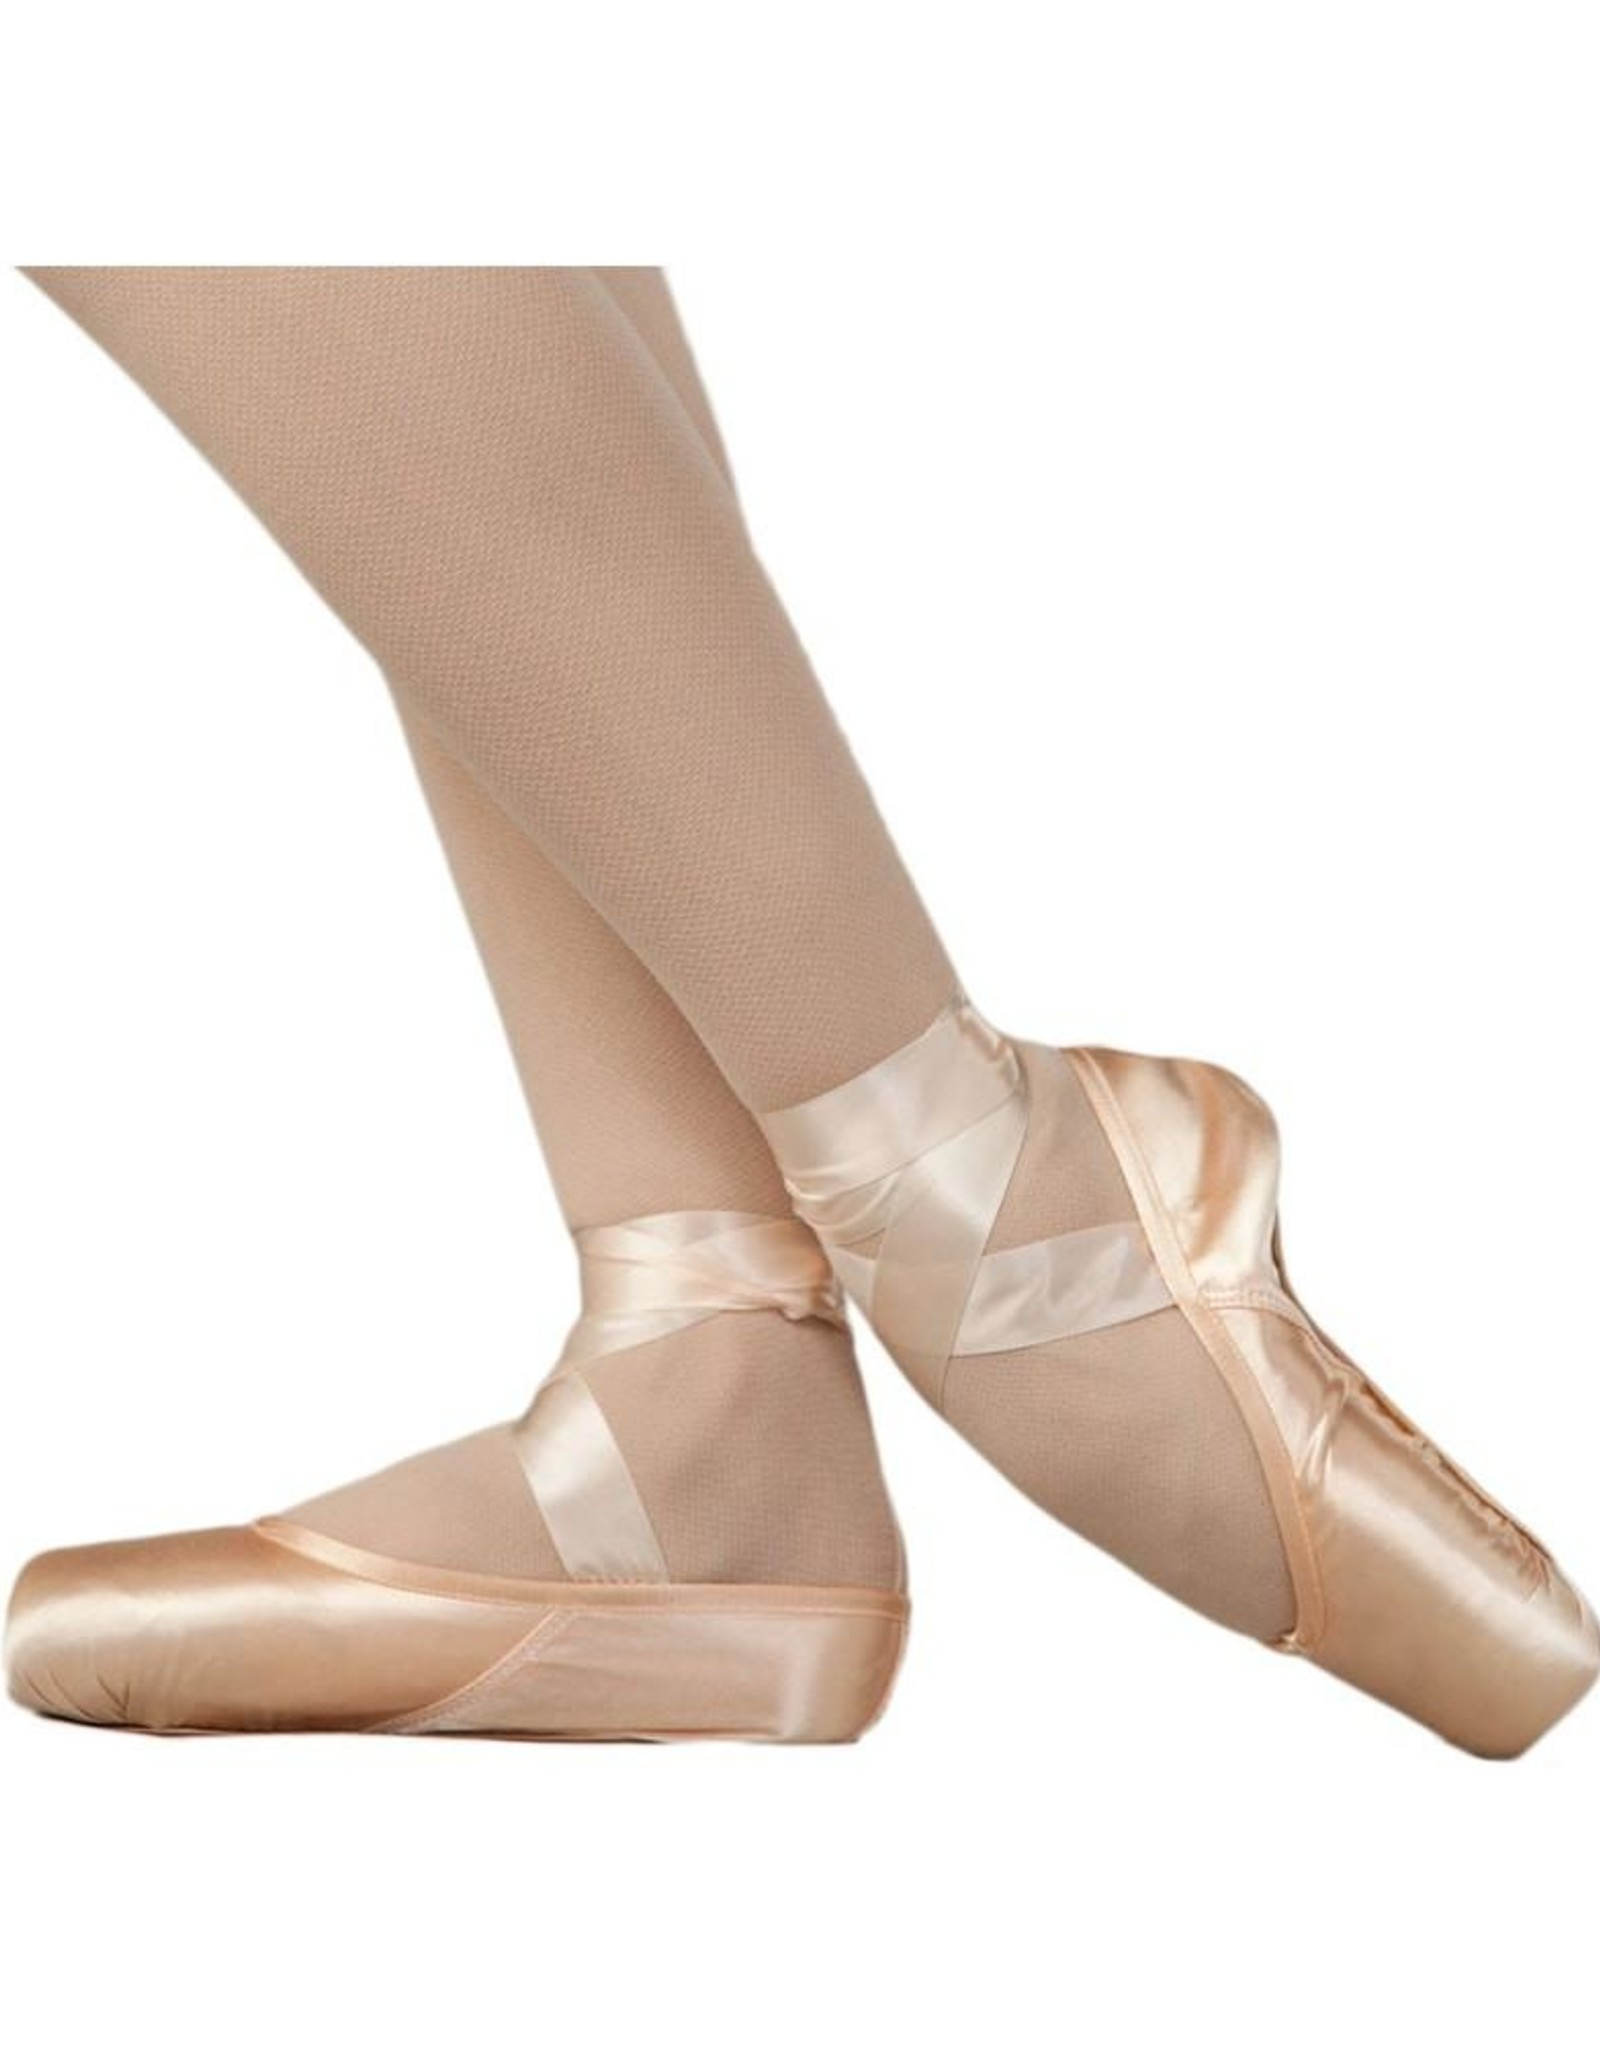 CAPEZIO TENDU ll POINTE SHOES (199)